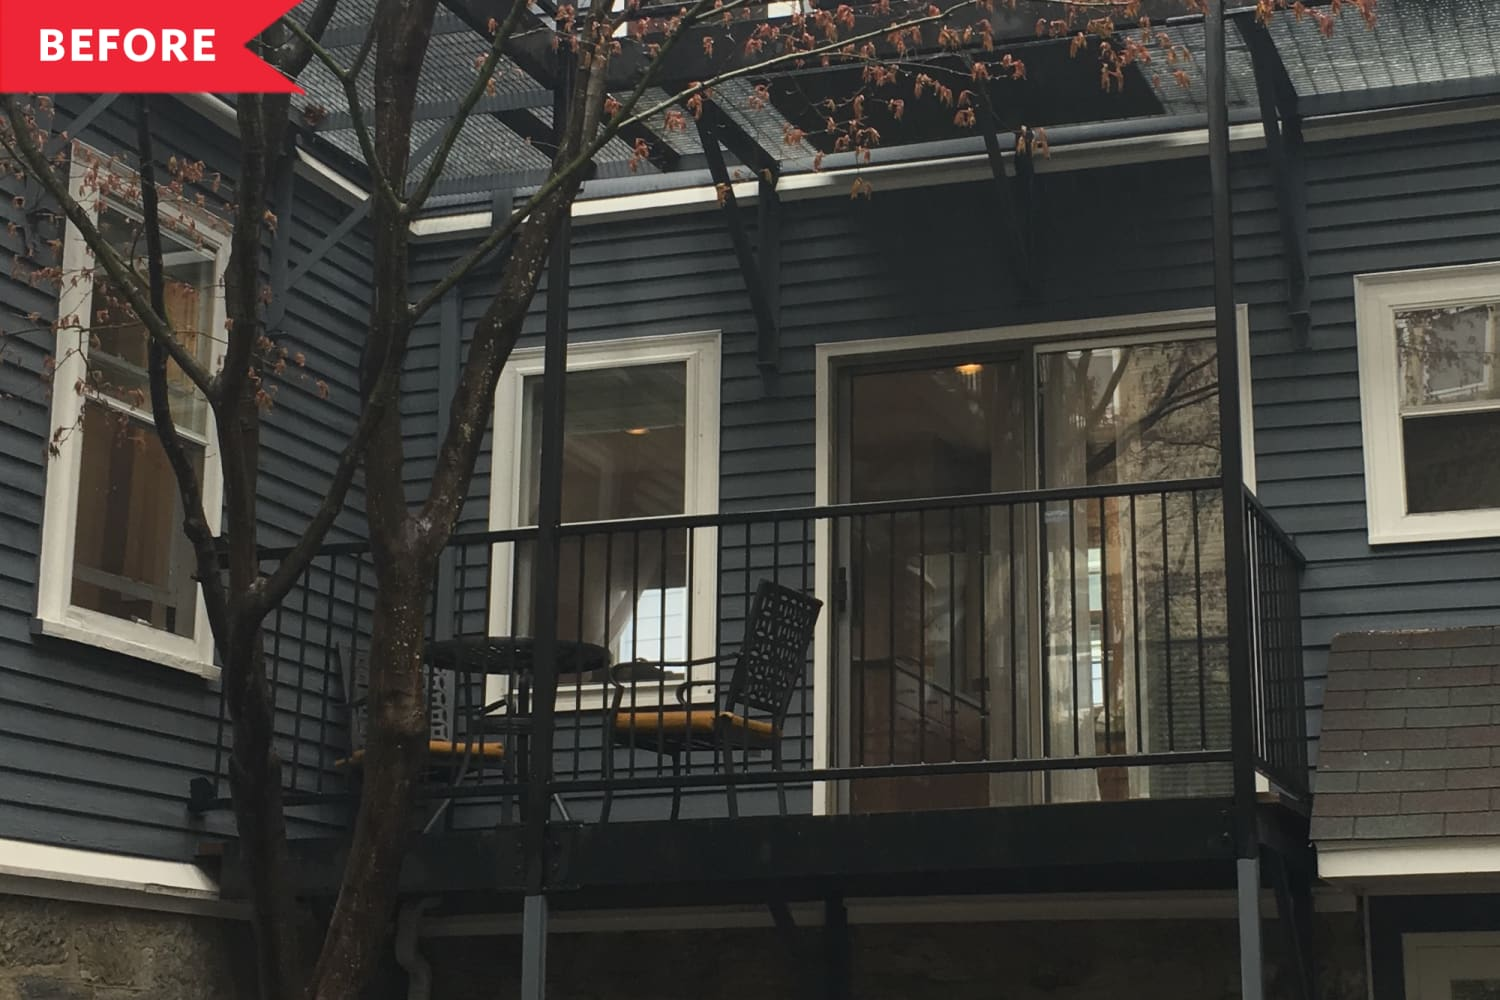 Before and After: A Small, Boring Balcony Becomes a Charming, Café-Inspired Oasis for $600